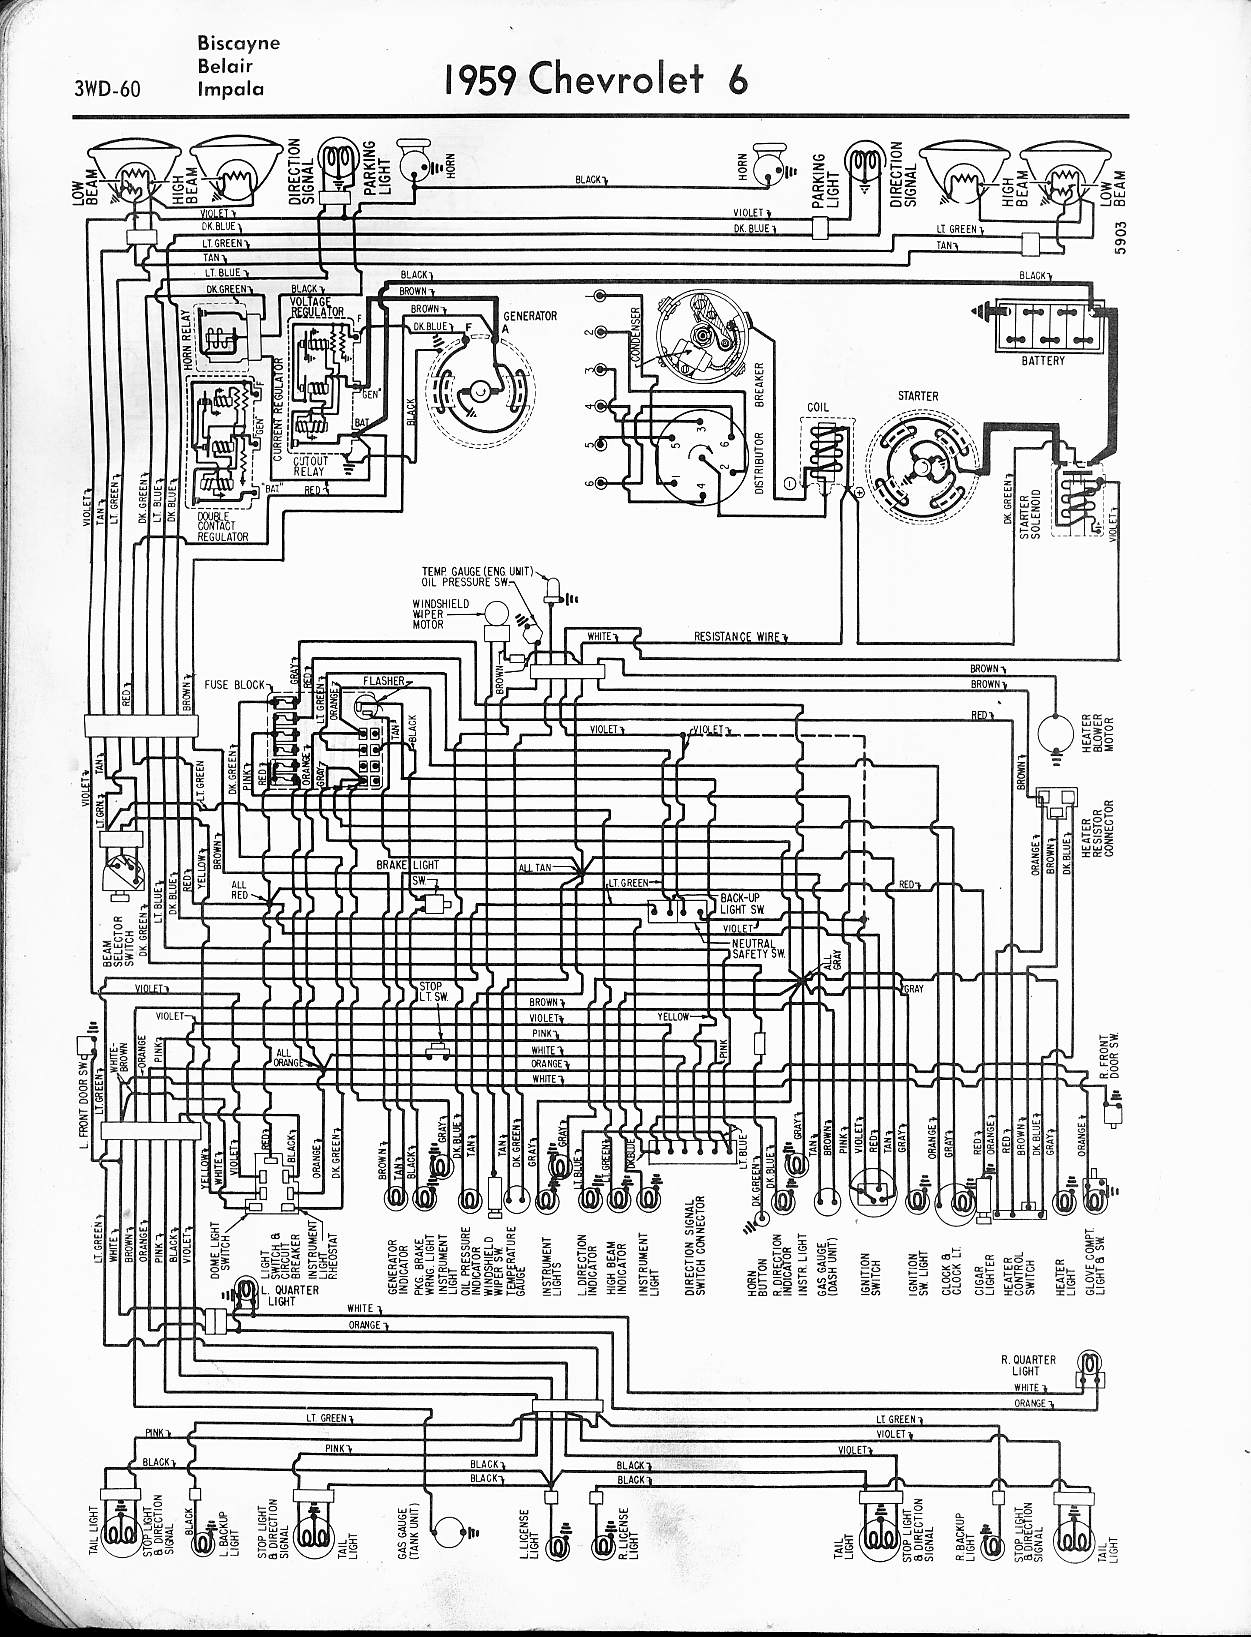 Wiring Diagram For 1967 Chevy Impala Library Ii 57 65 Diagrams Rh Oldcarmanualproject Com Camaro 1959